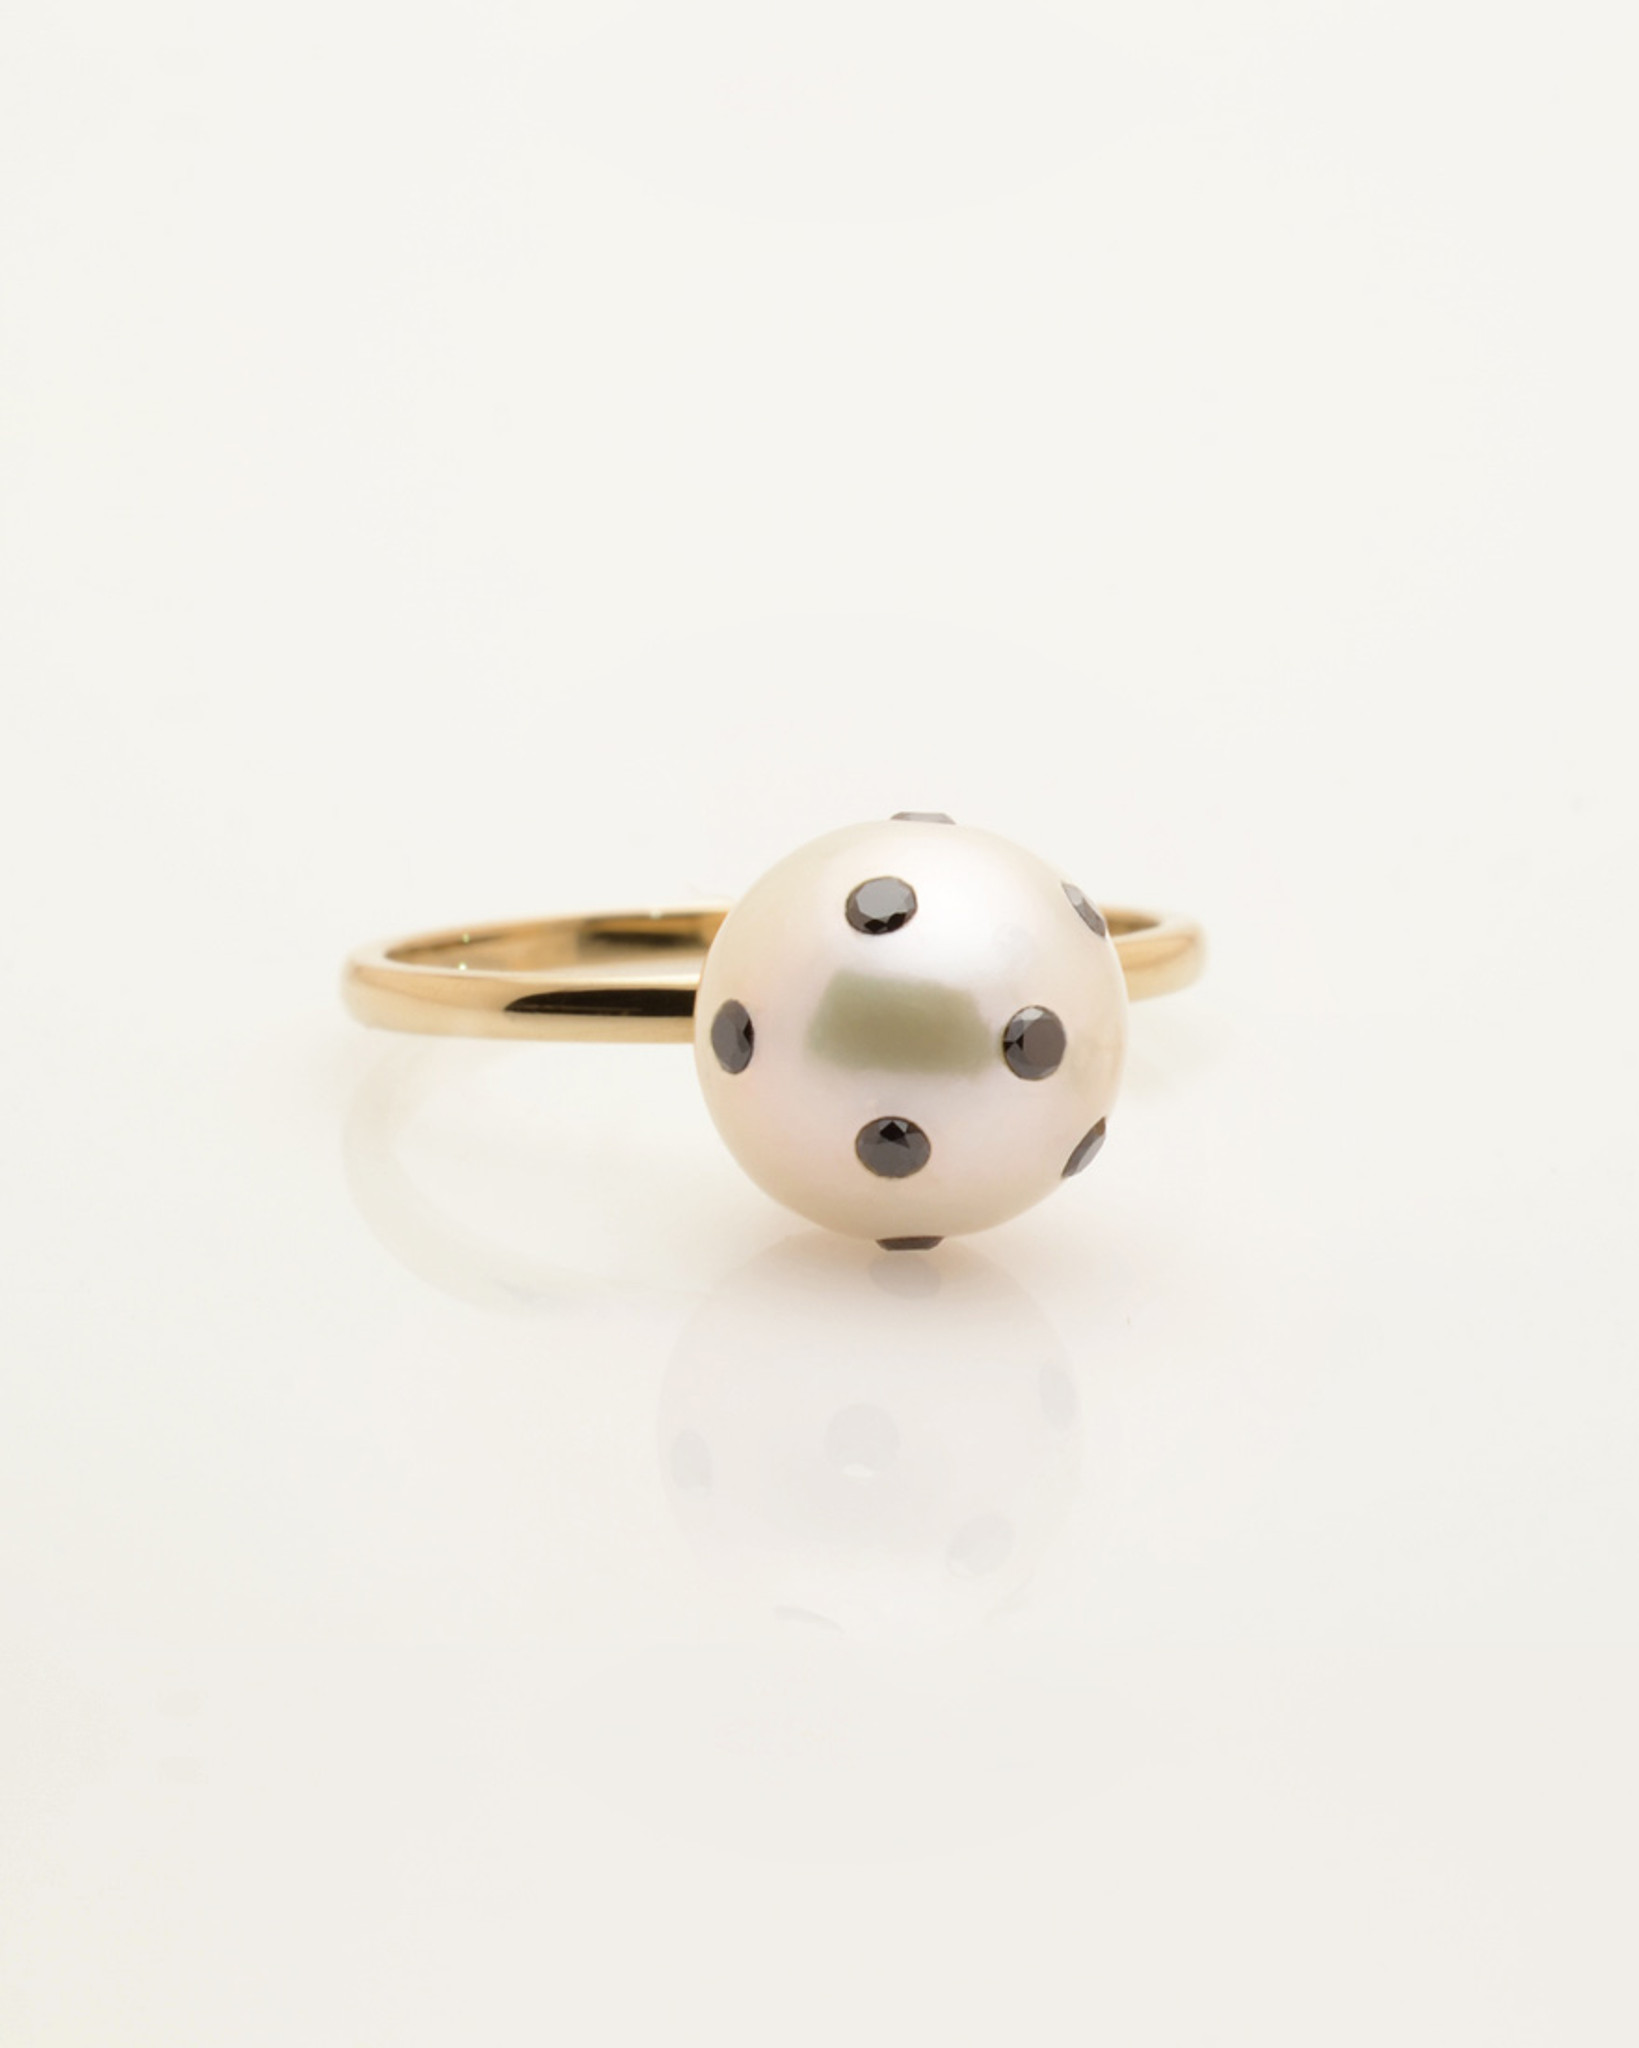 Cultured Freshwater Pearl Ring with LadyBug Diamond Pave and 14k Gold Band by Fine Jewelry Designer Nektar De Stagni (8-9 mm. Size-5-6-7)